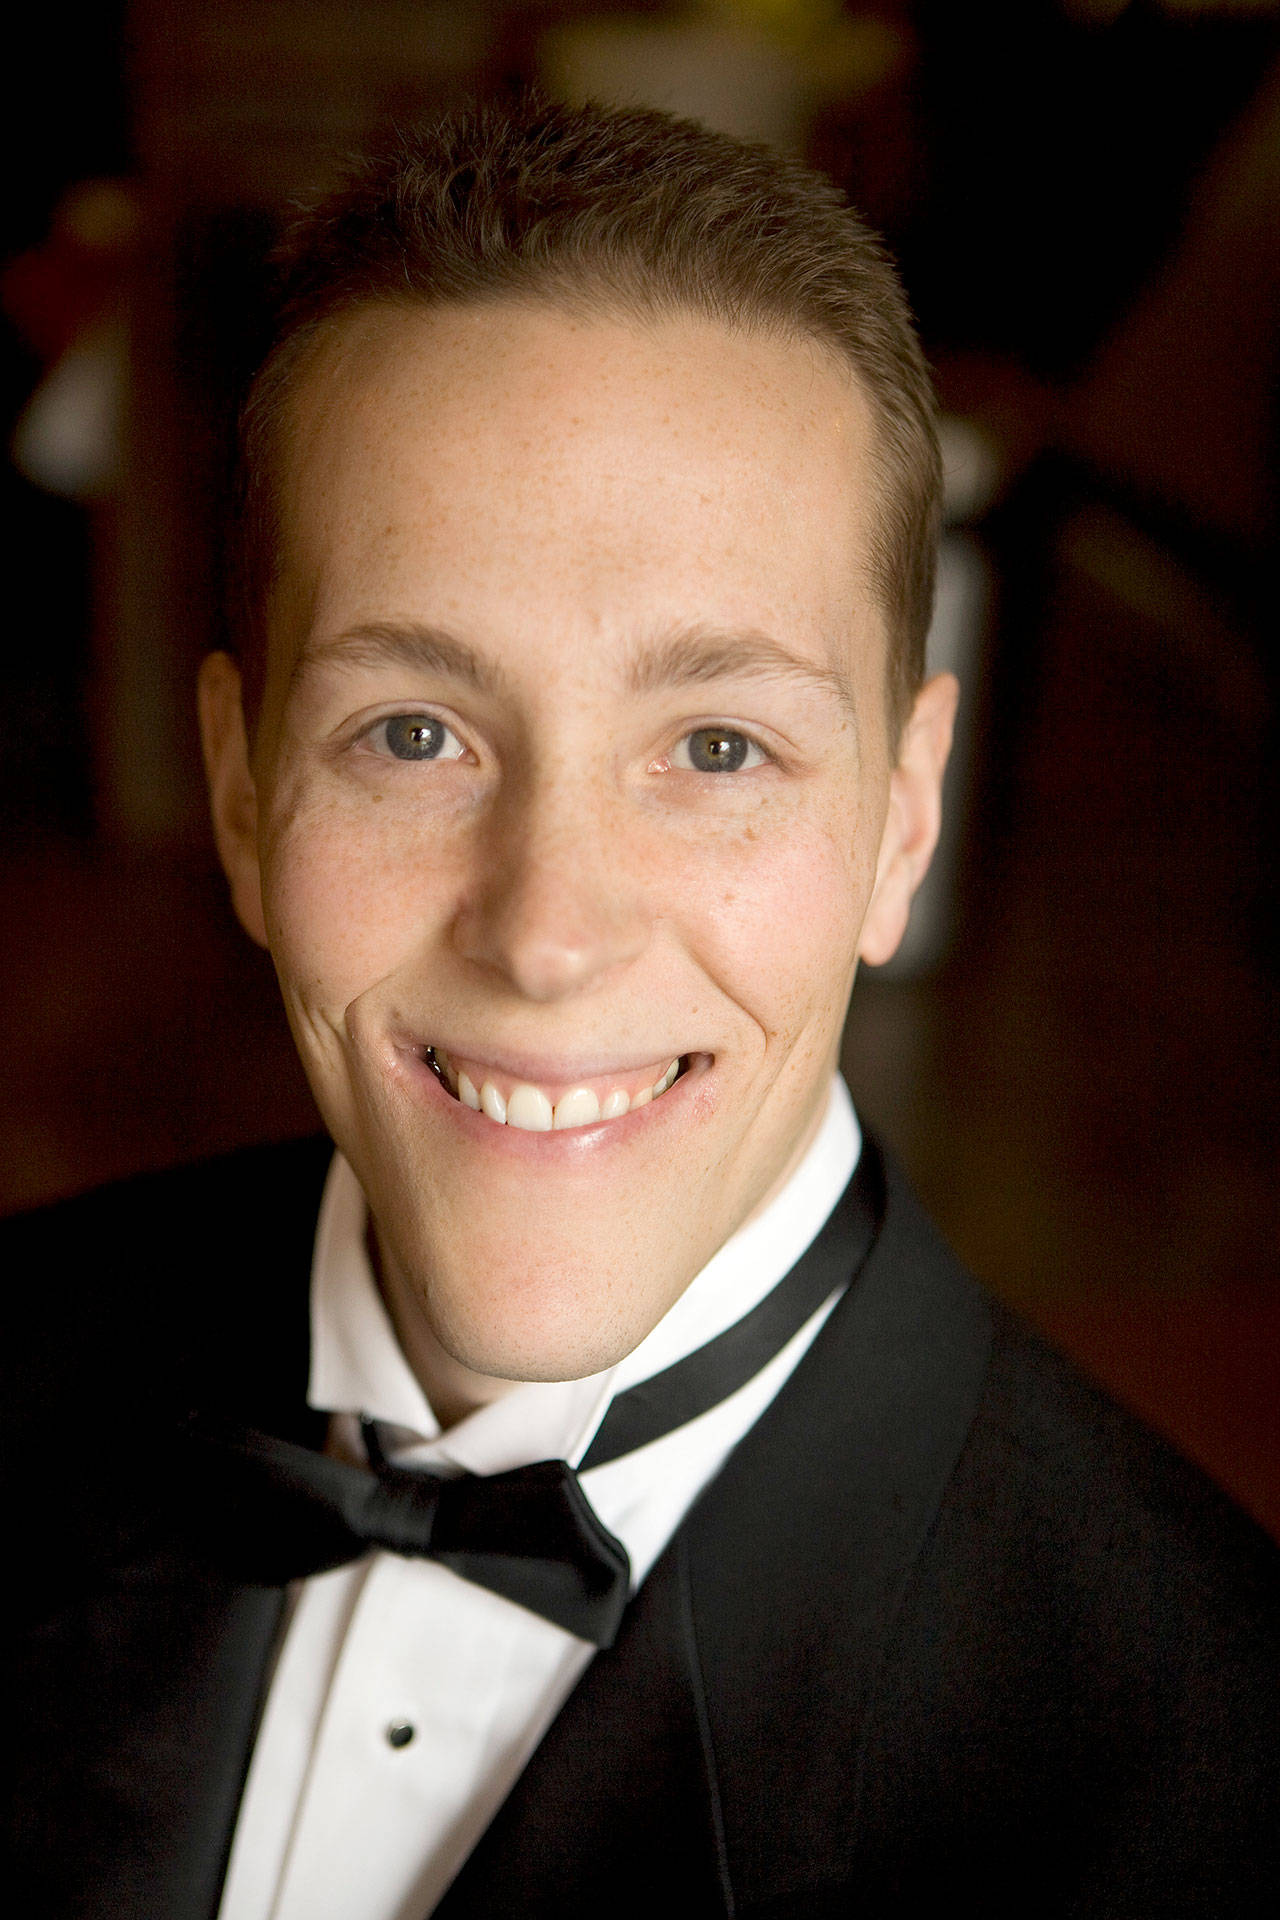 Baritone Ryan Bede is the soloist with the Everett Chorale during its Christmas concerts at 7 p.m. Dec. 2 and 3 p.m. Dec. 3.